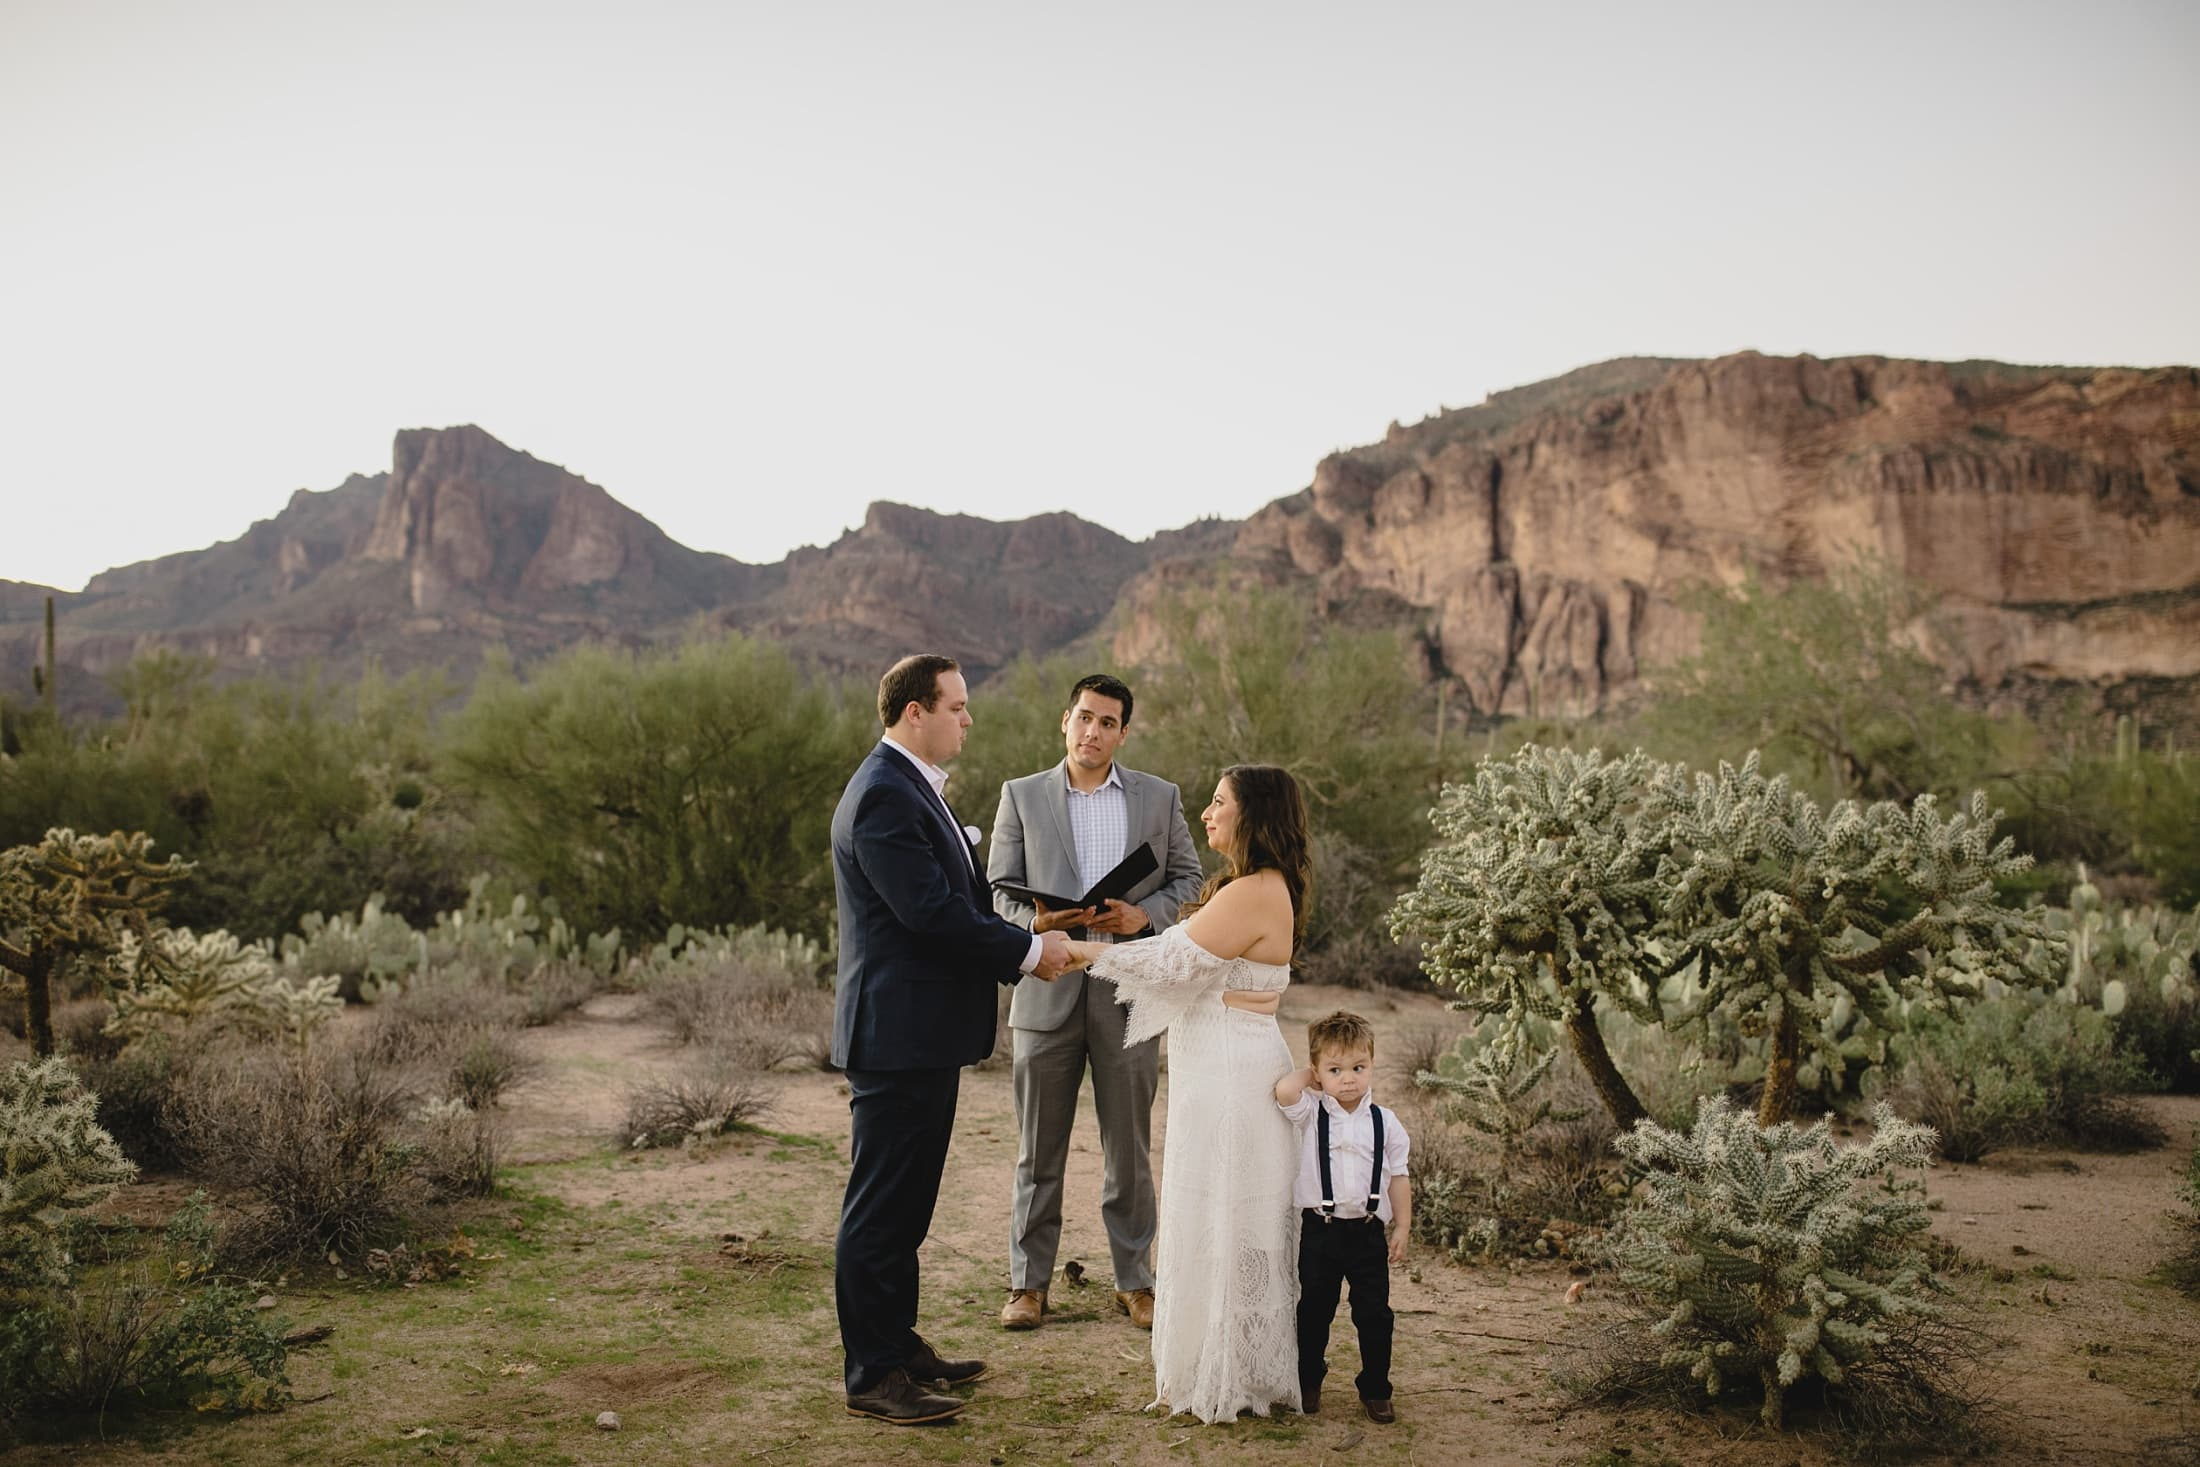 small wedding in Arizona desert bride and groom with kid